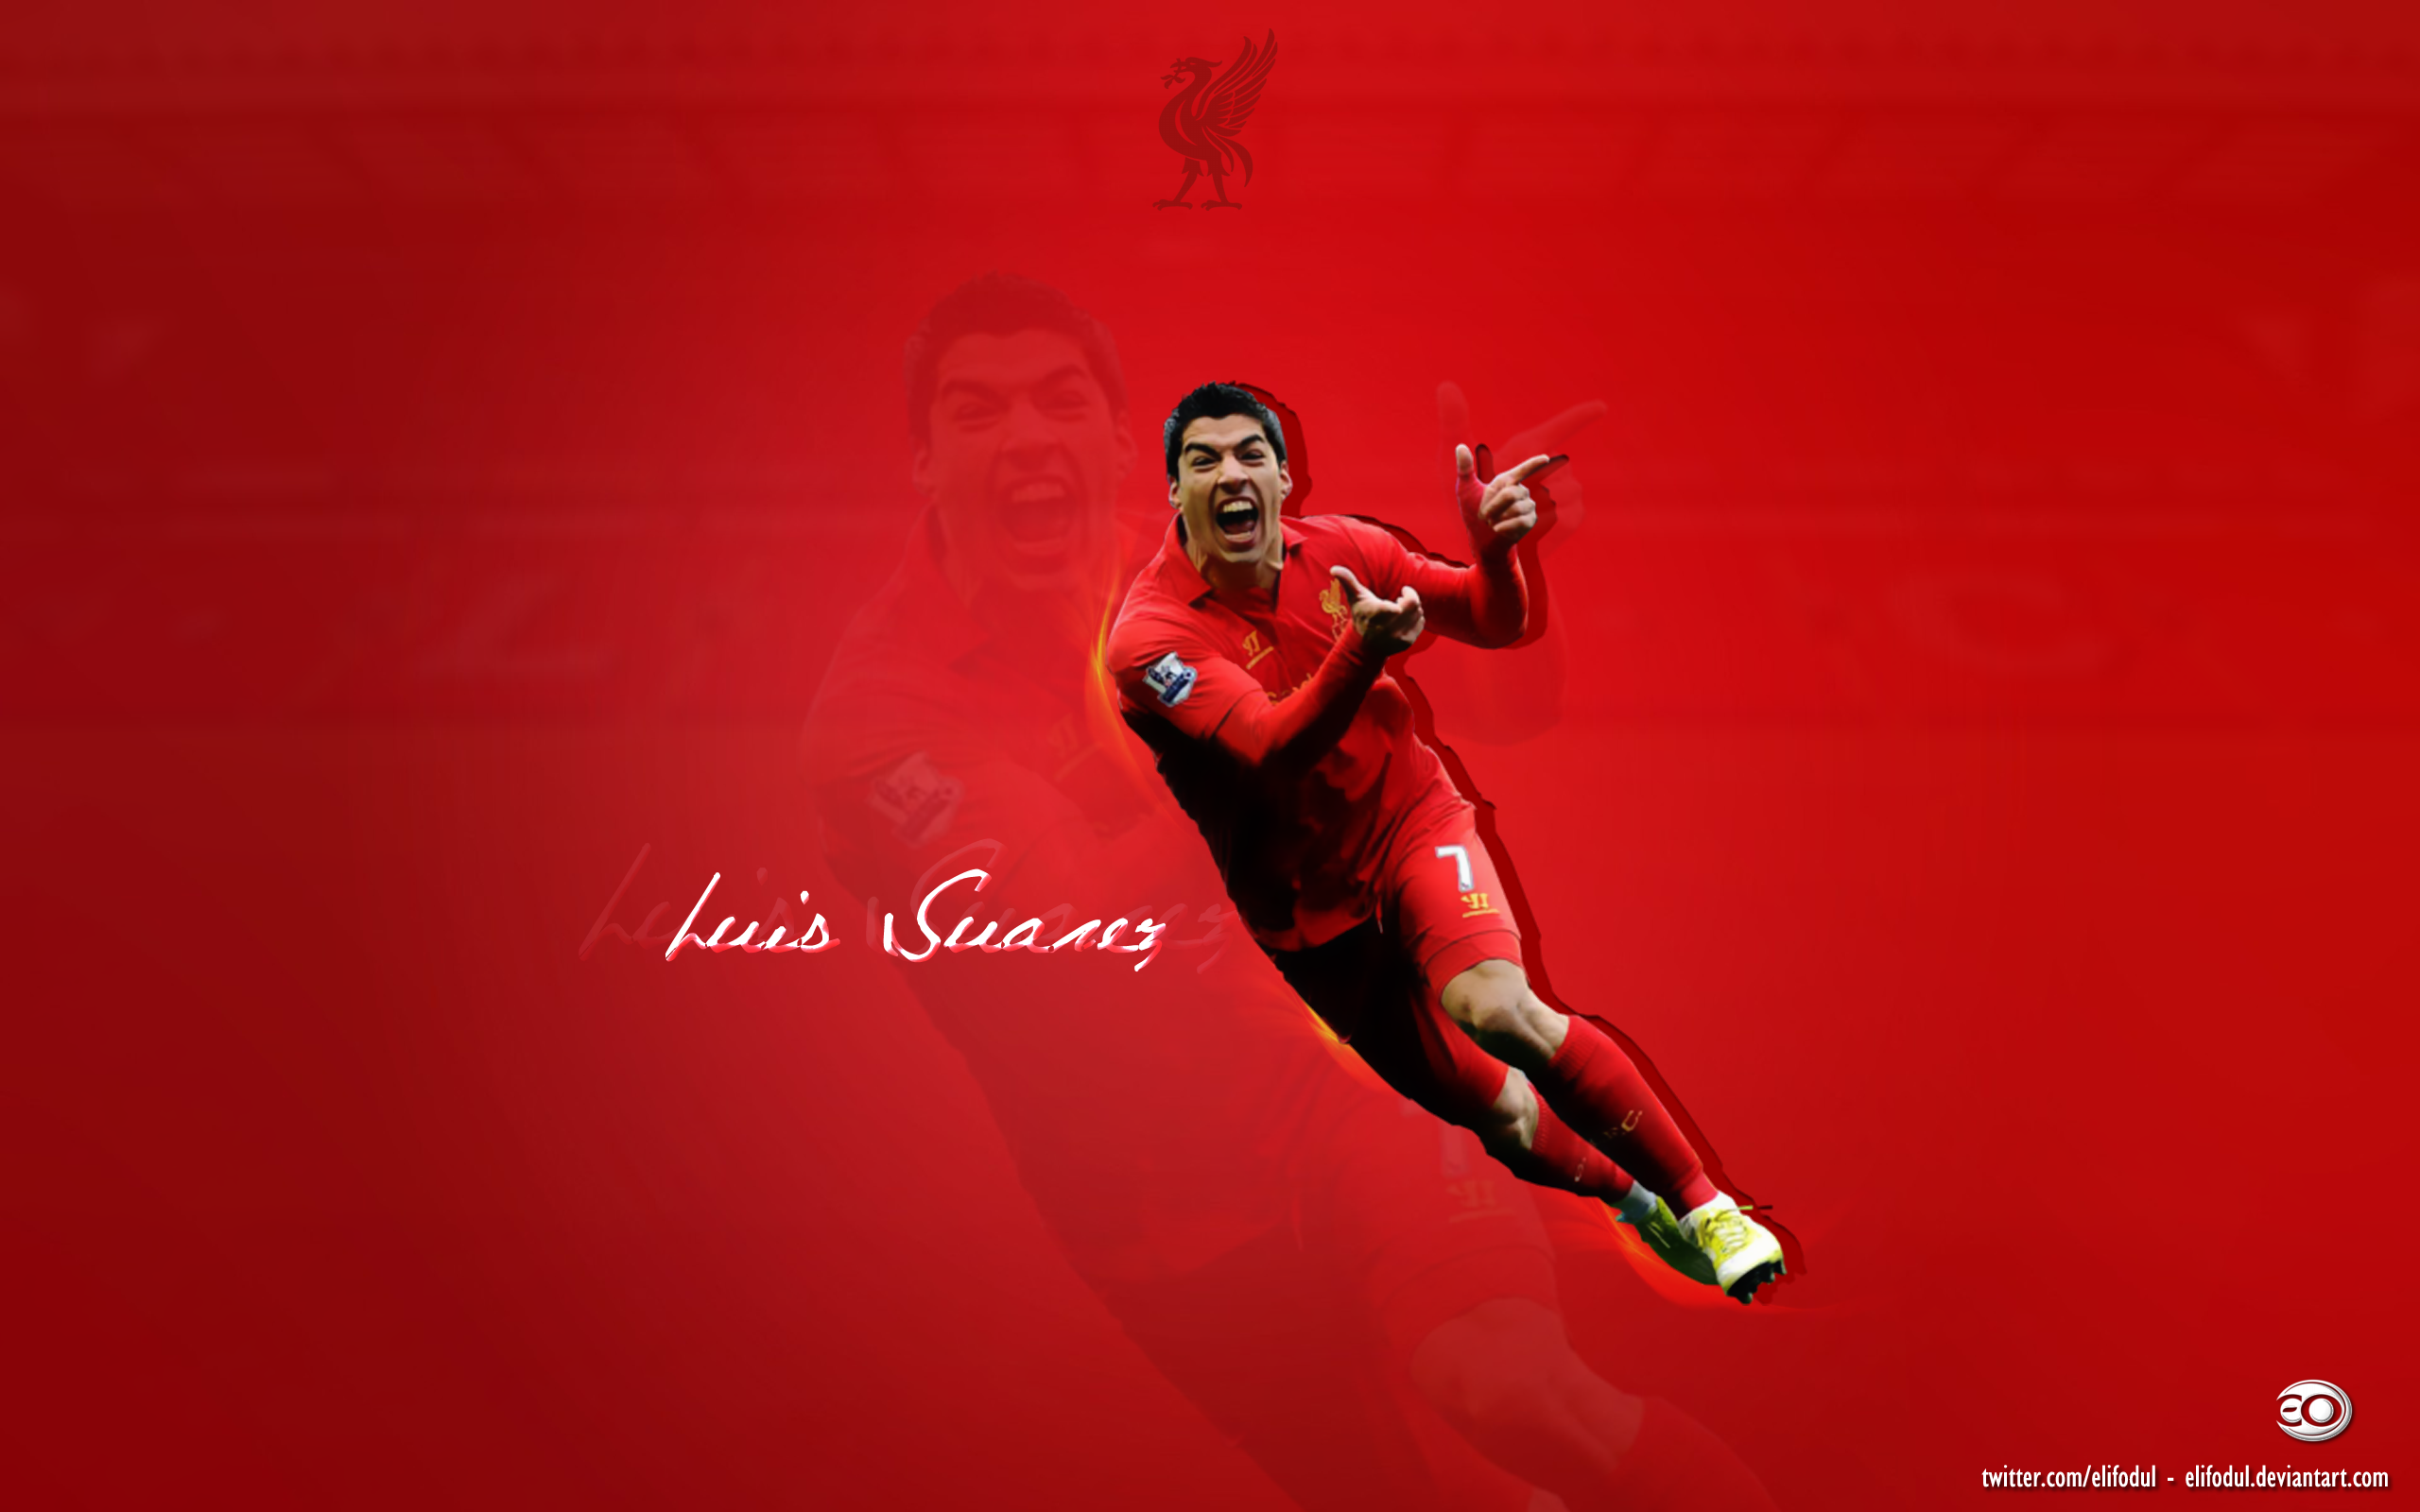 Luis Suarez Wallpapers   Football Wallpaper HD Football Picture HD 2560x1600